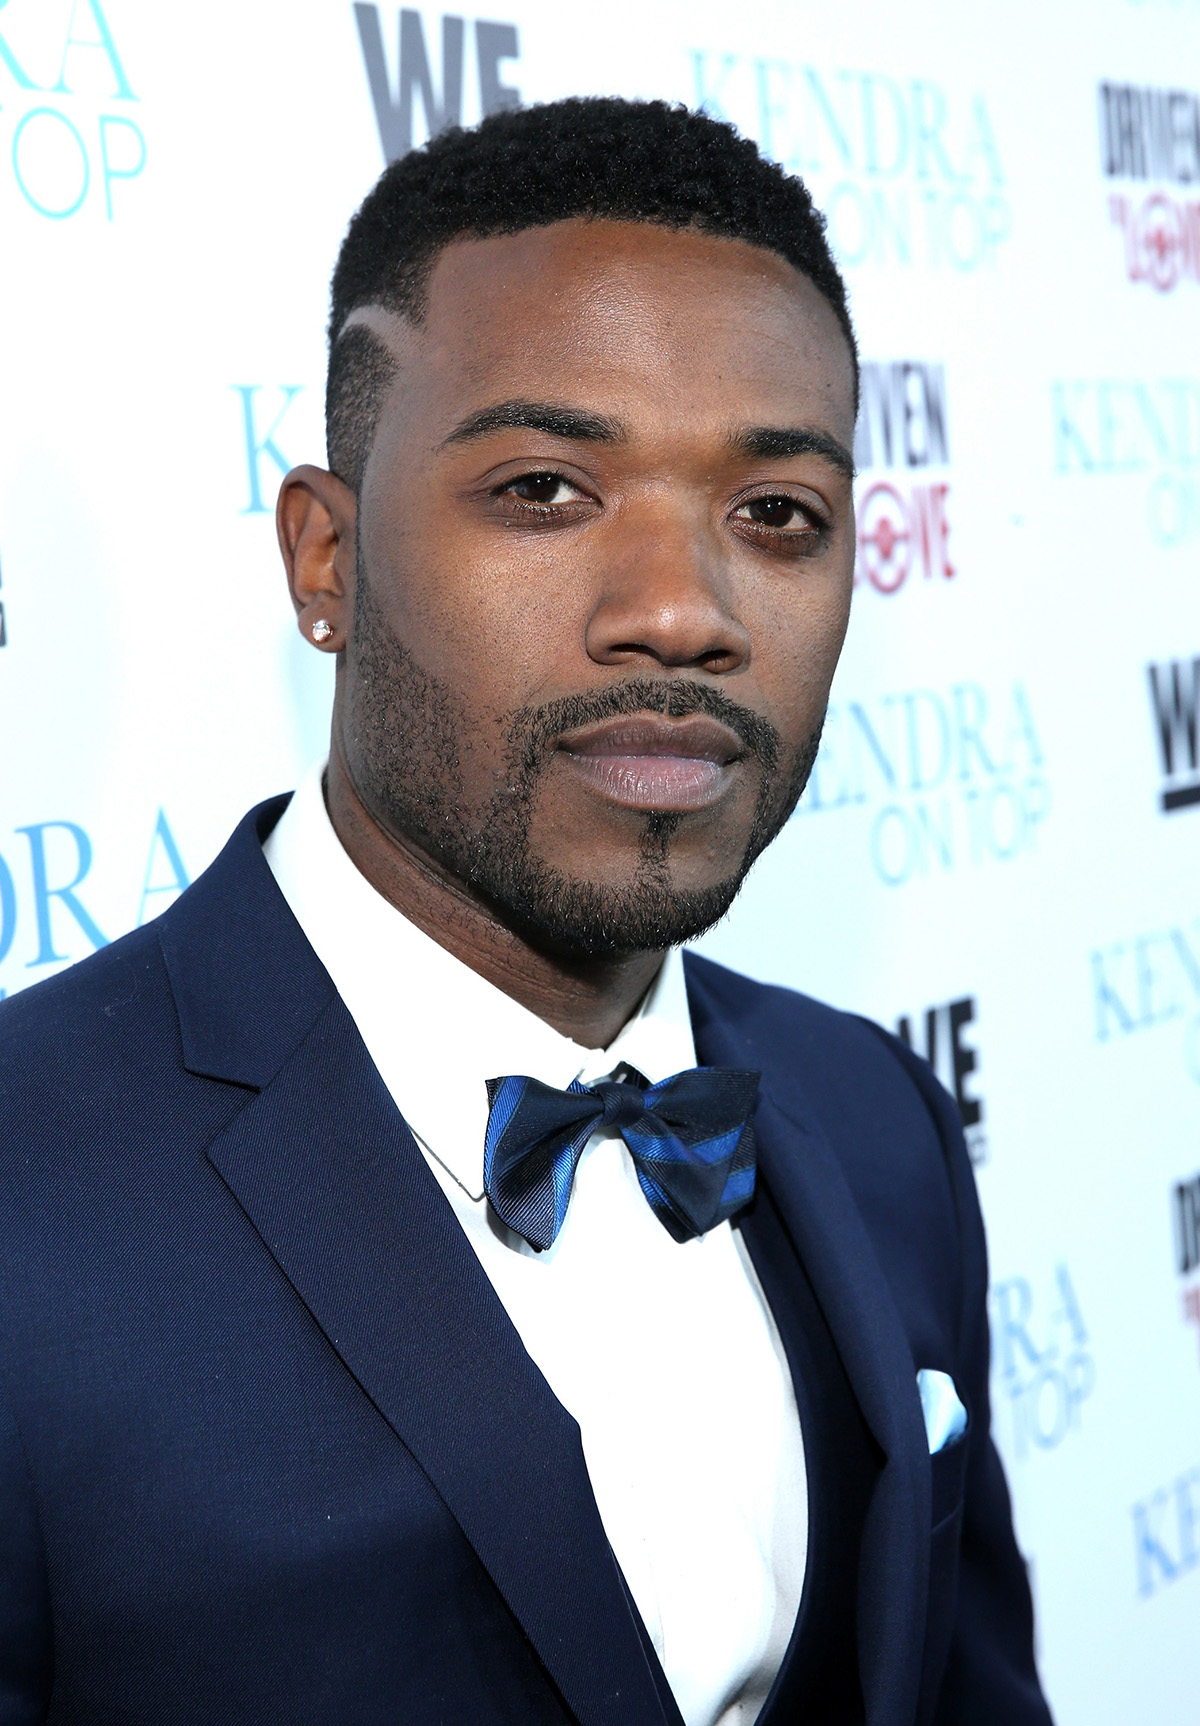 ray-j-featuring-chris-brown-famous-1479827377-compressed